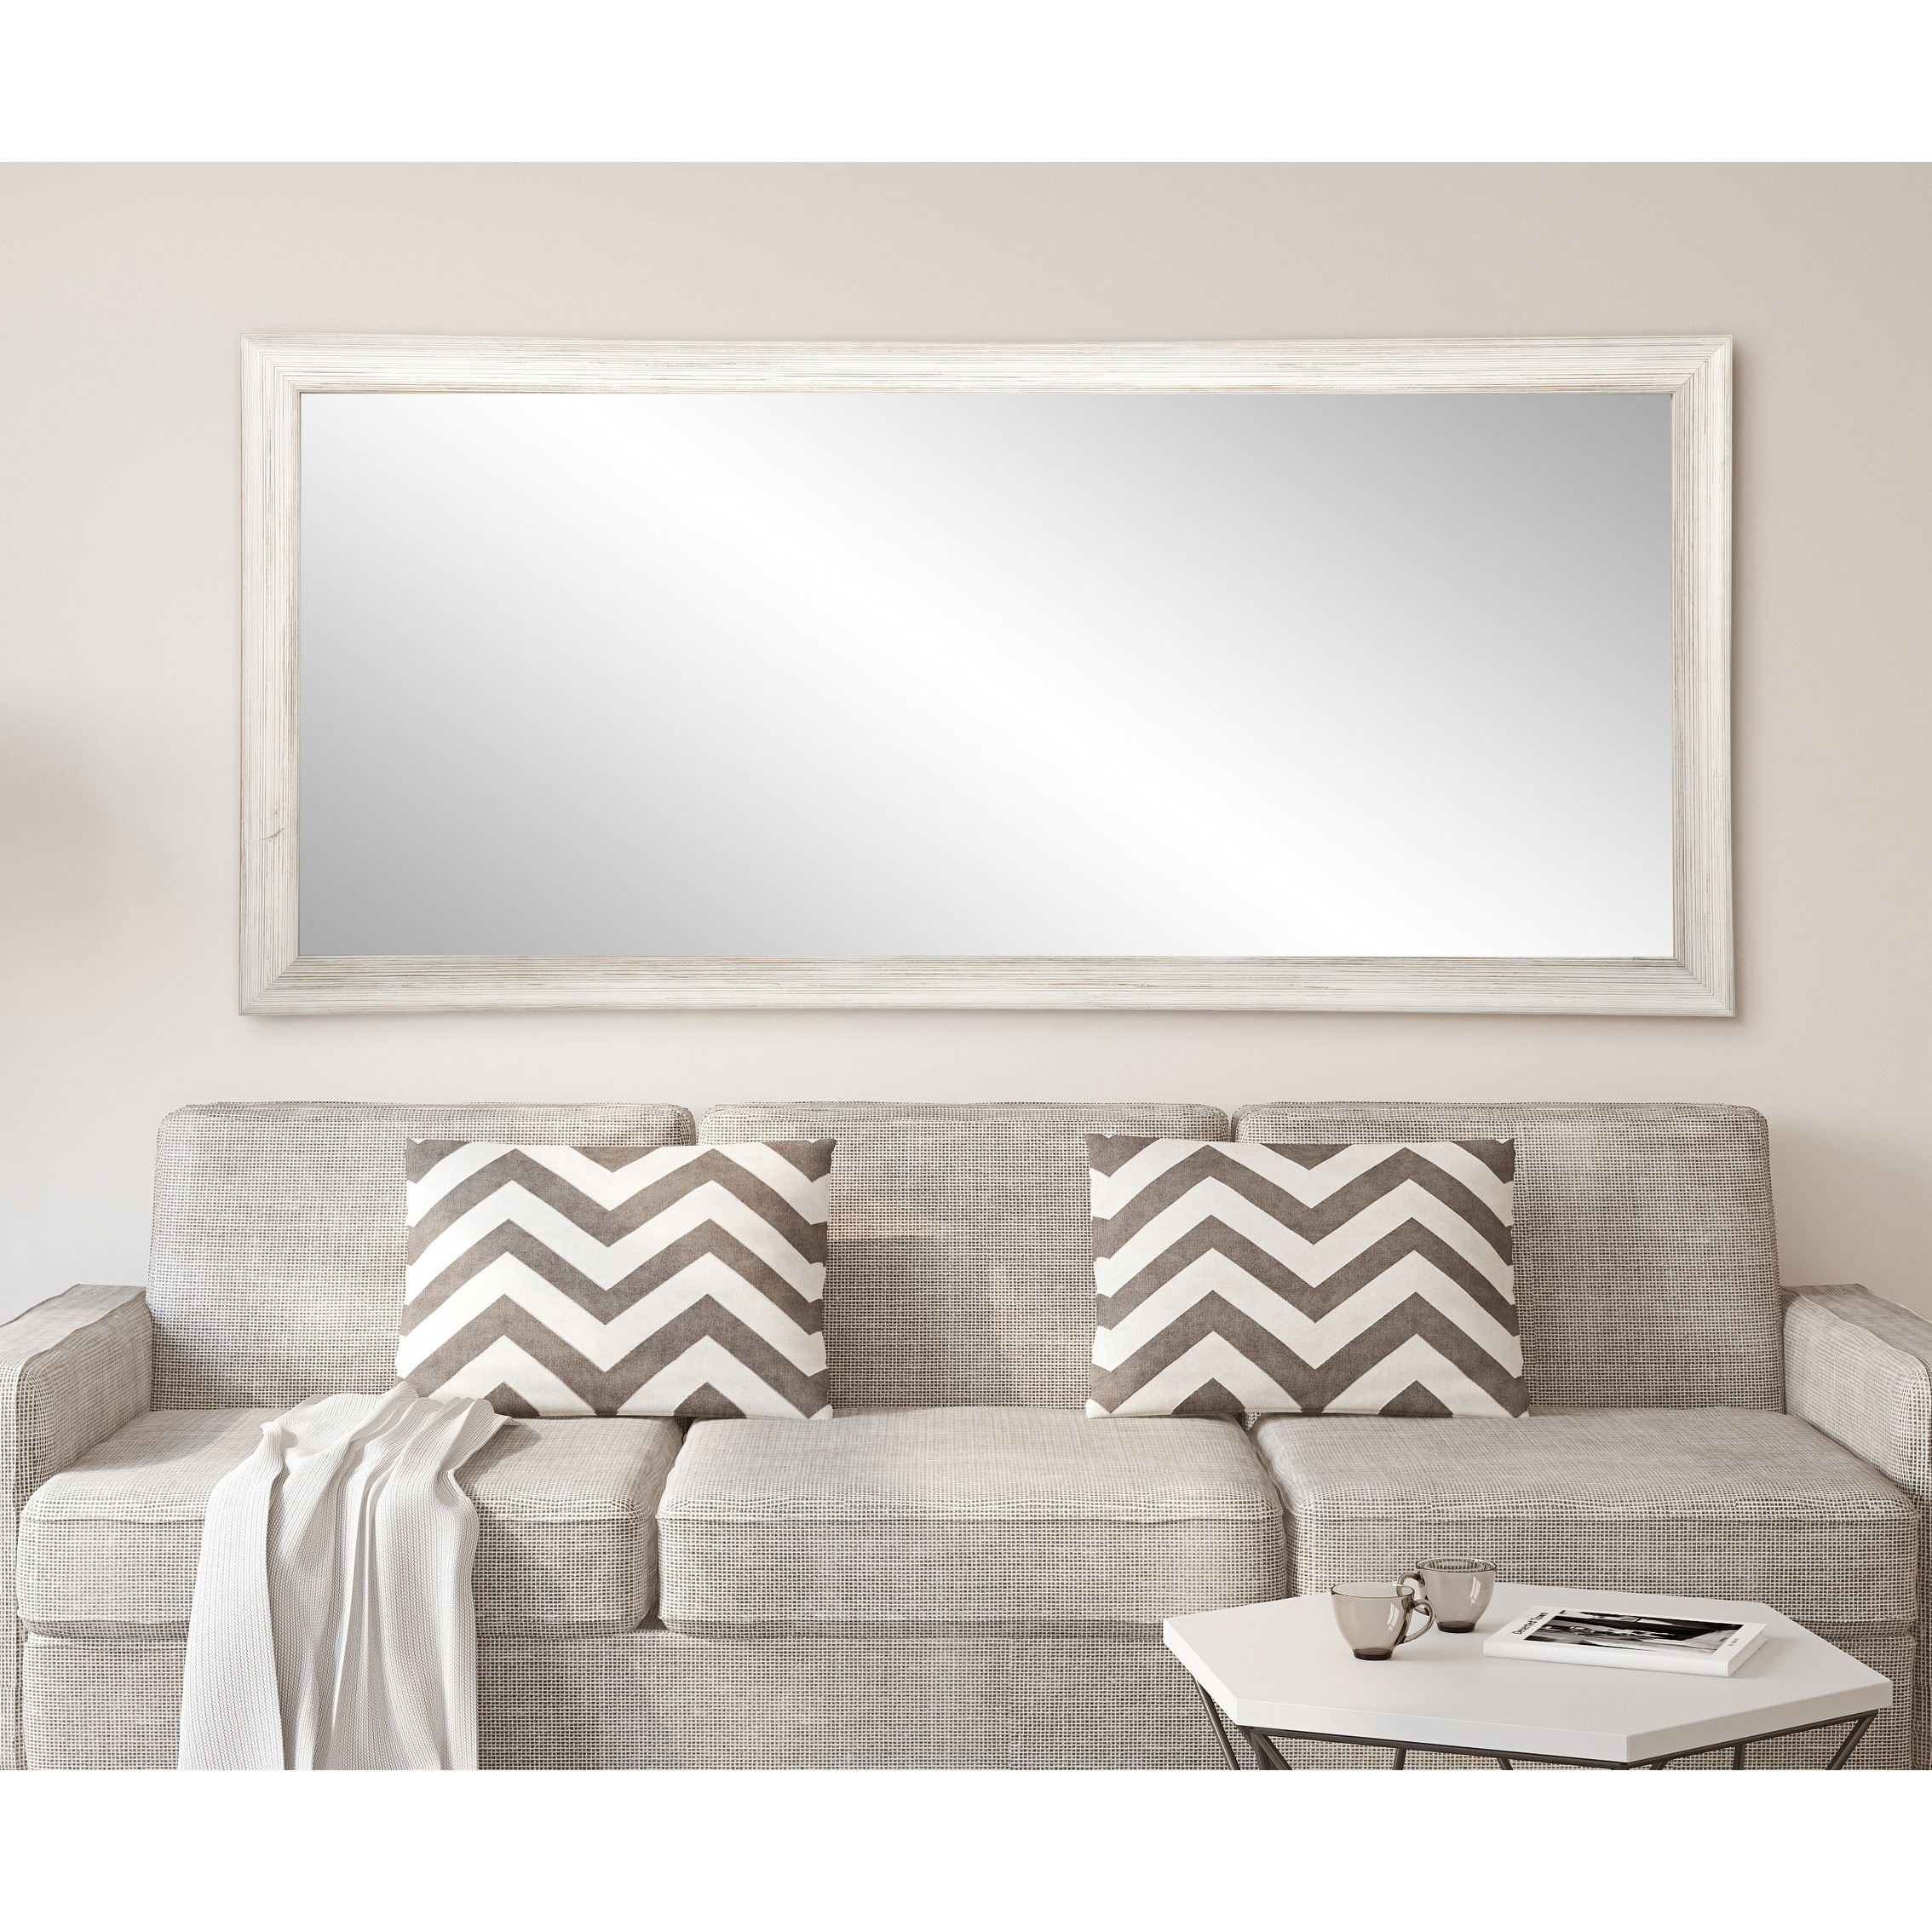 White Floor Mirror Multi Size Brandtworks Distressed Coastal White Wood Floor Mirror White Grey